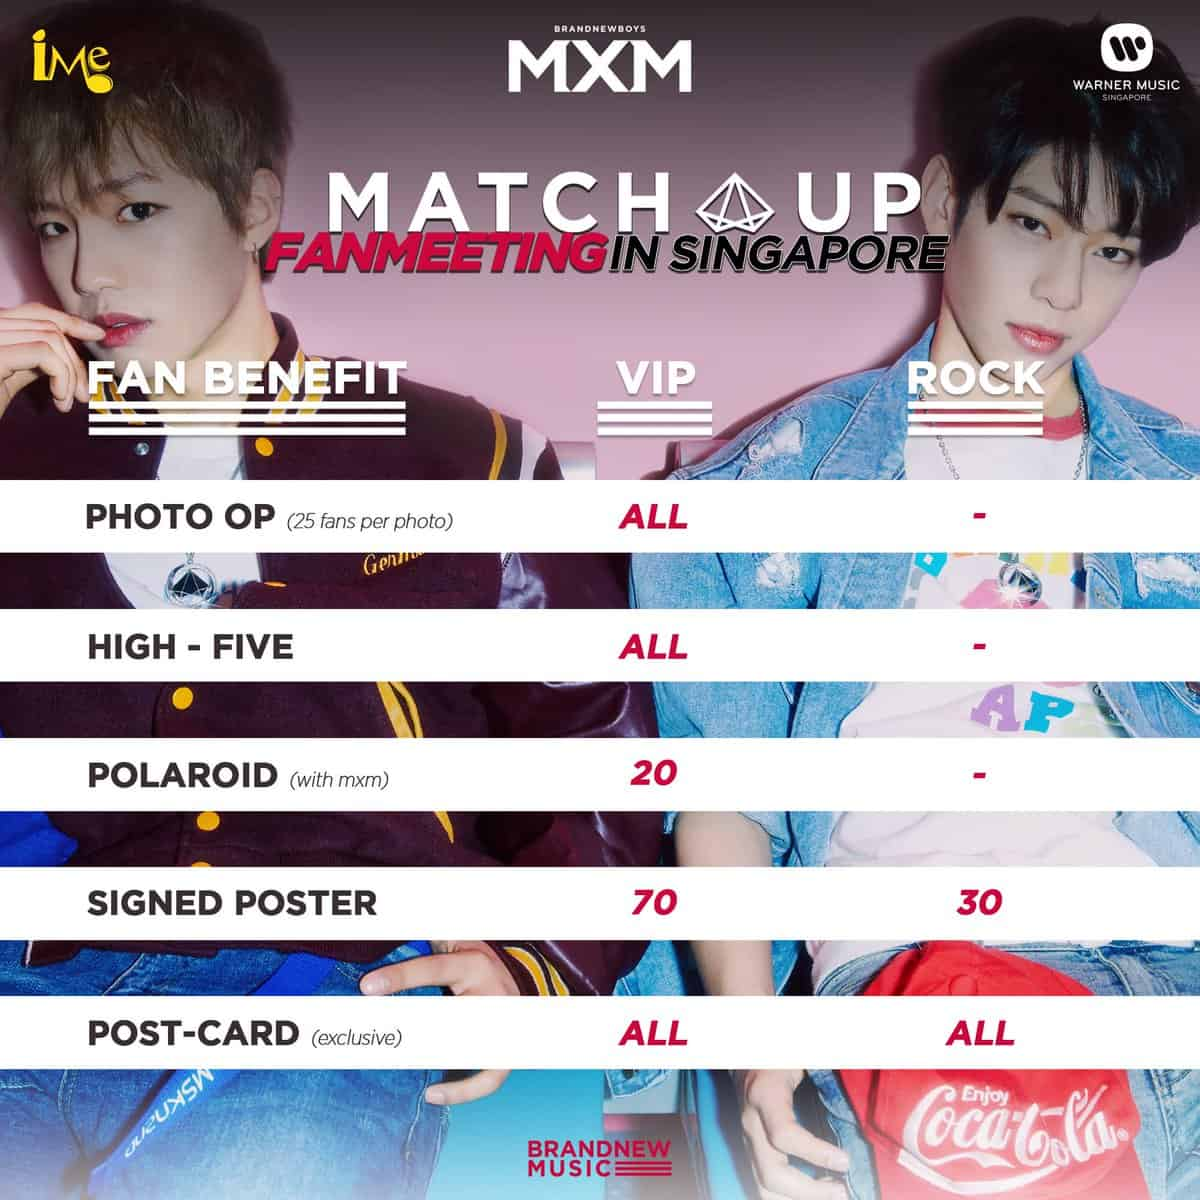 MXM Match Up Fan Meeting In Singapore